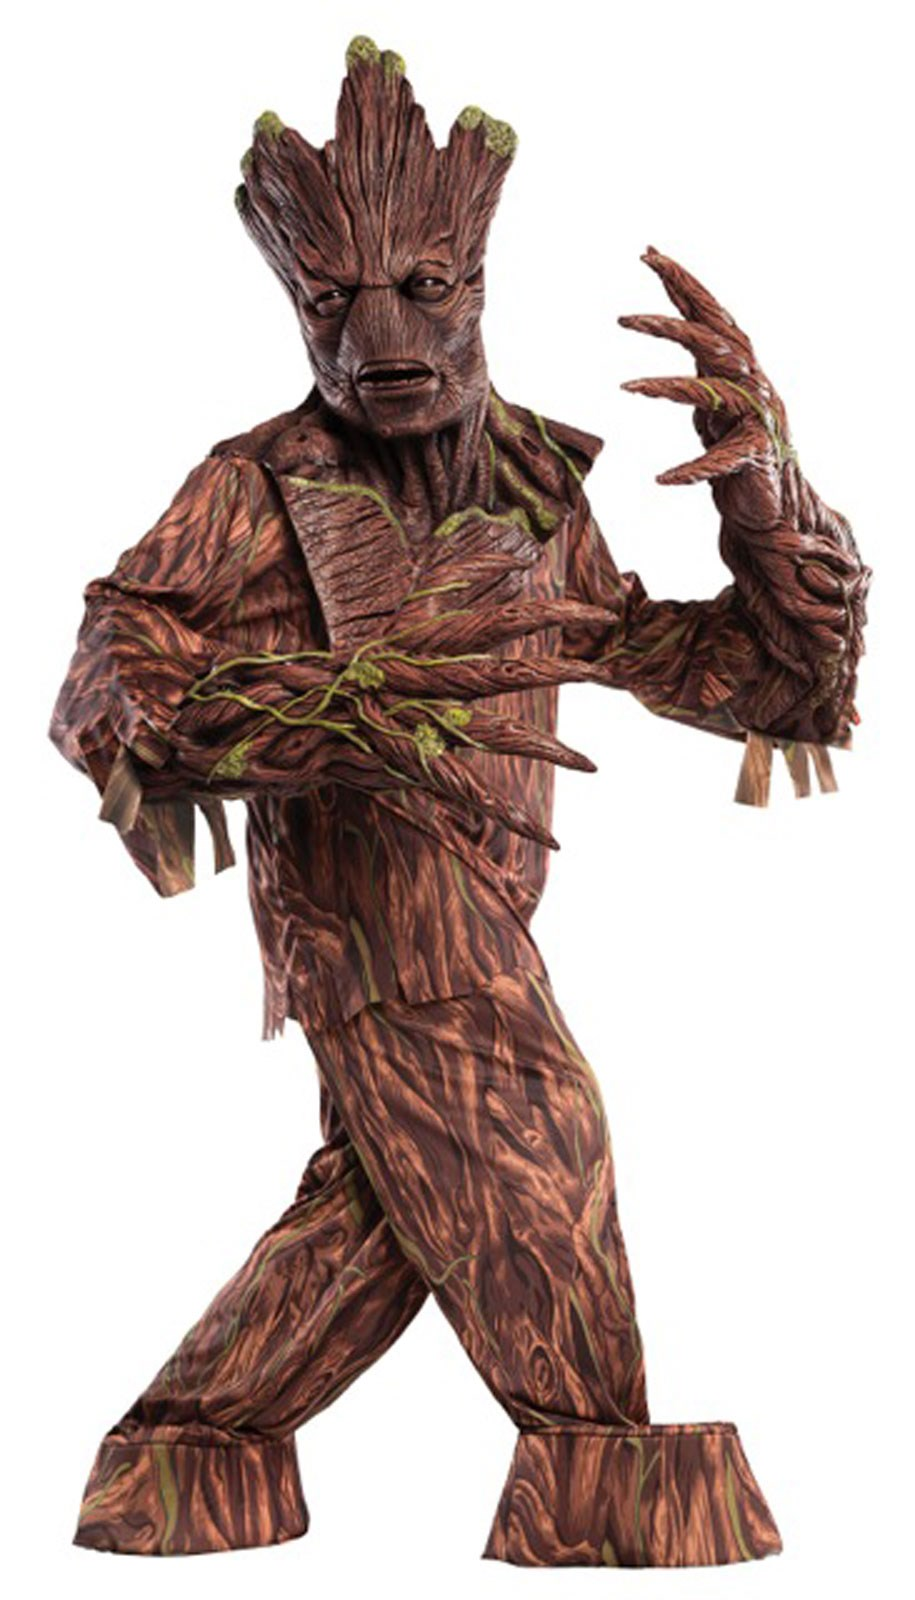 Guardians of the Galaxy Groot Reacher Creature